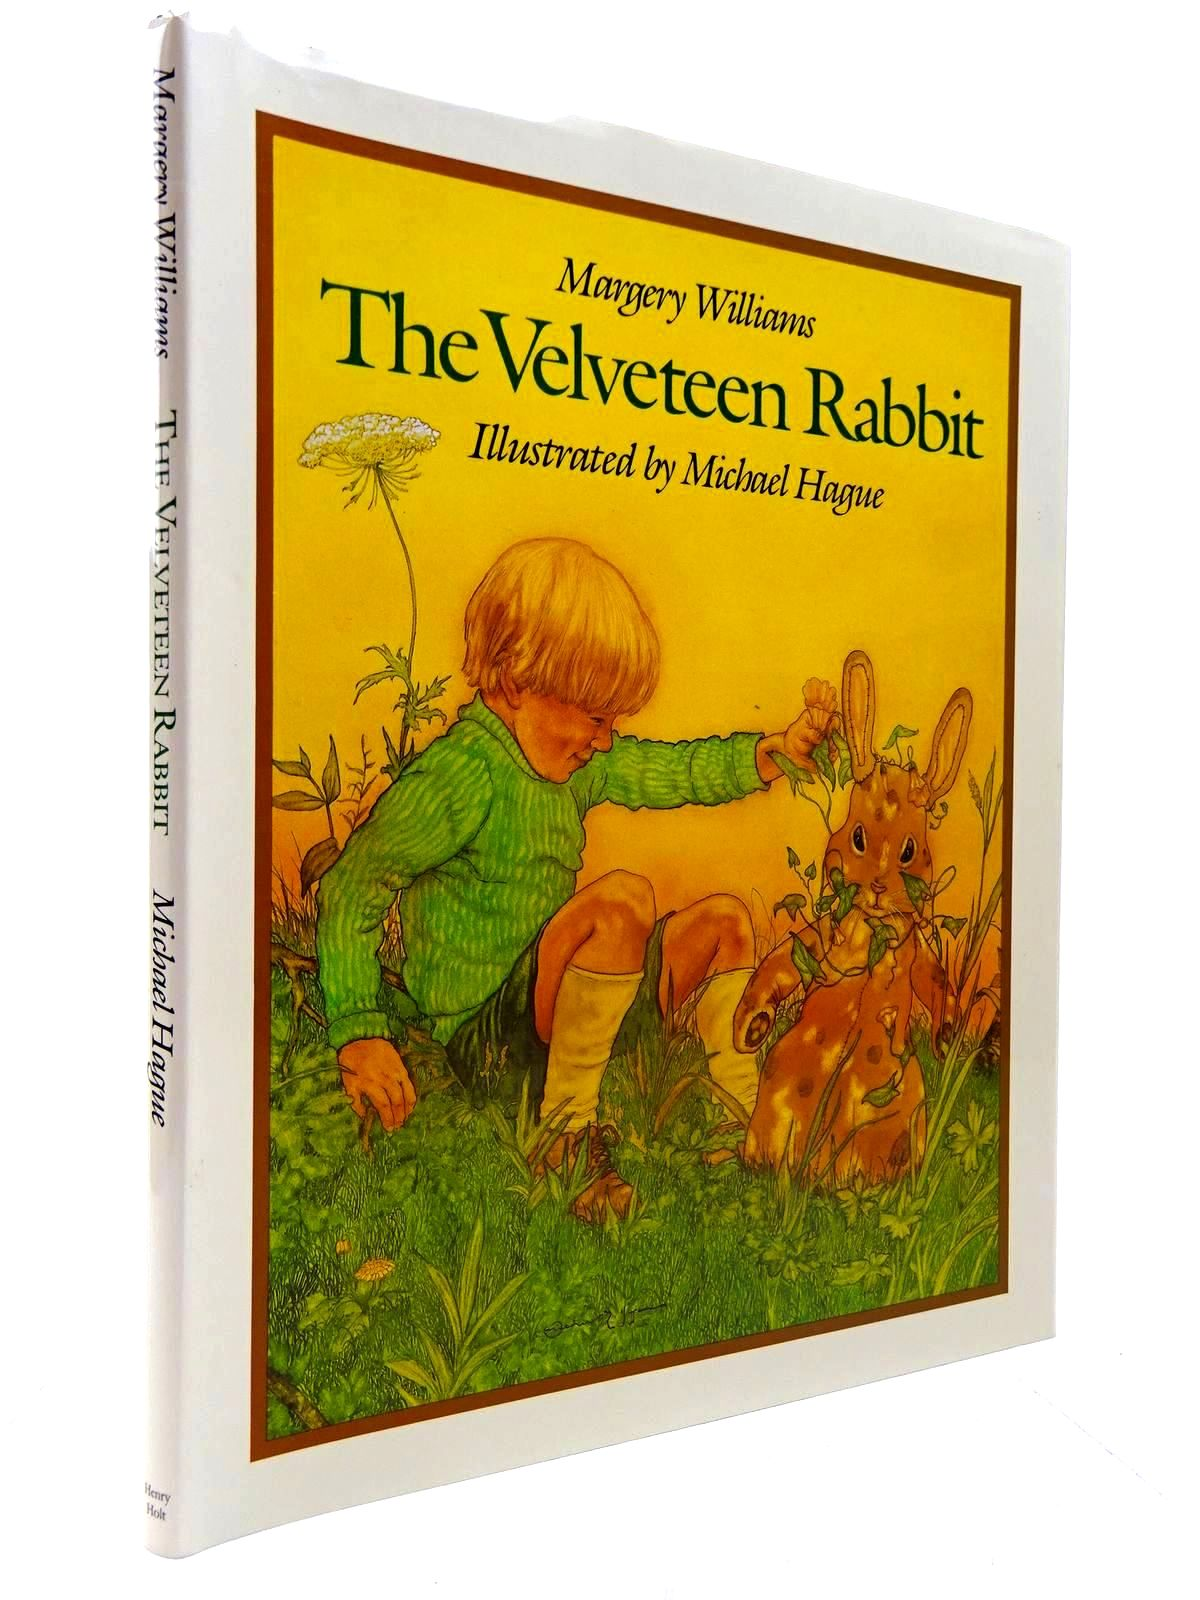 Photo of THE VELVETEEN RABBIT written by Williams, Margery illustrated by Hague, Michael published by Henry Holt and Company (STOCK CODE: 2130609)  for sale by Stella & Rose's Books